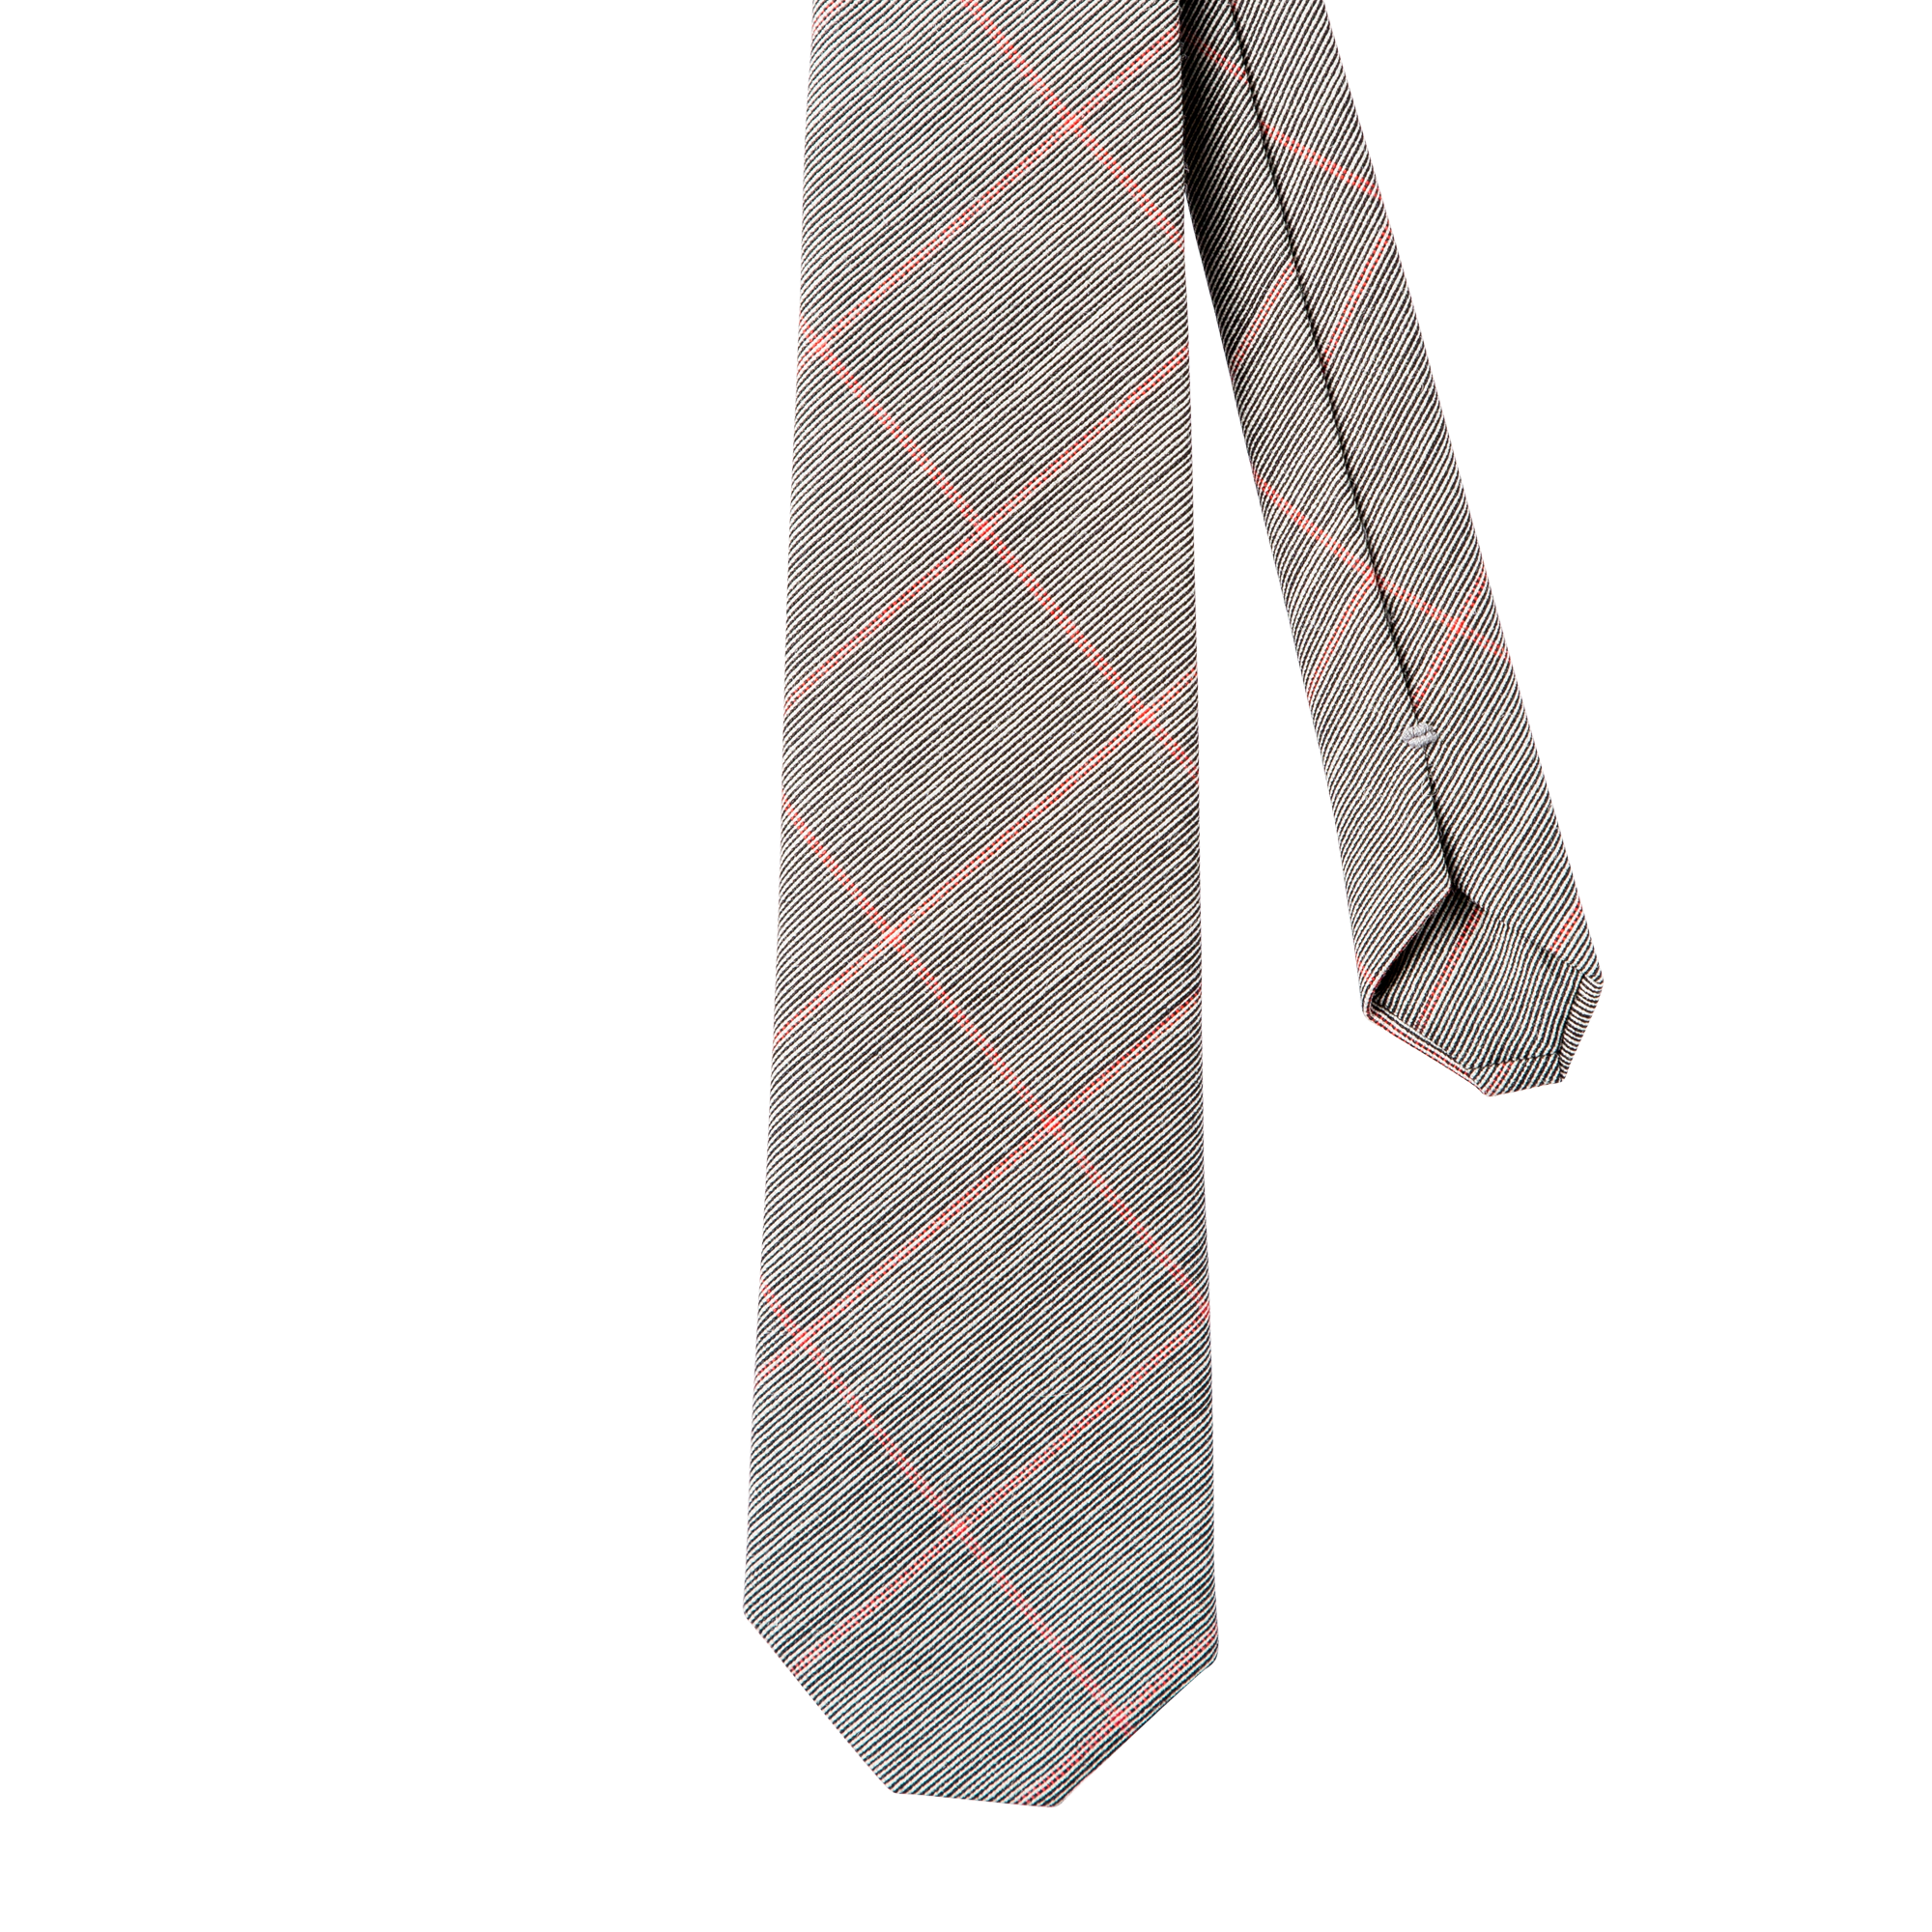 Holland & Sherry Necktie